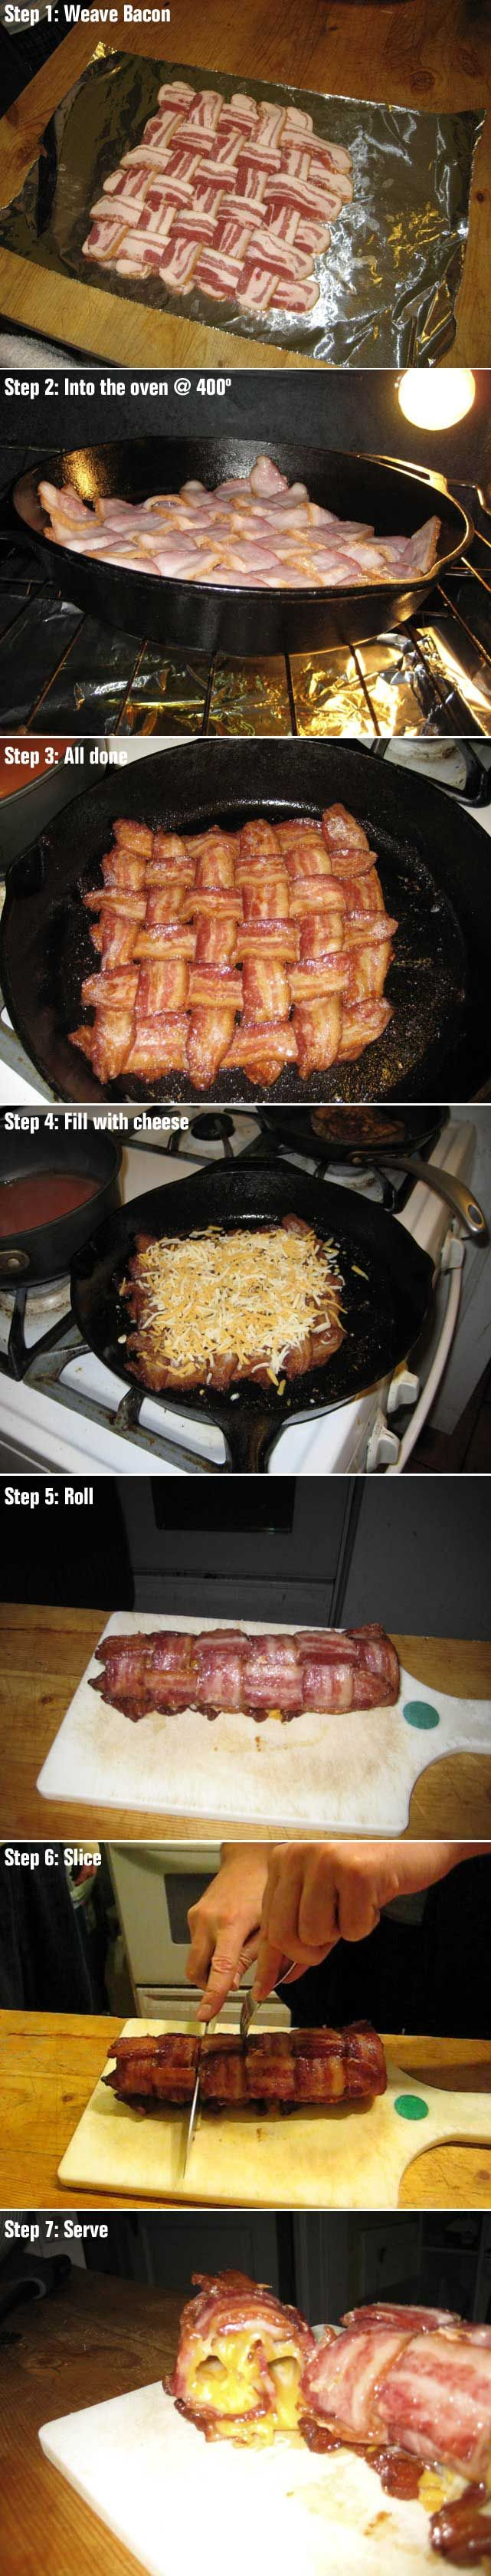 Recipe for successHeart Attack, Bacon Cheese, Food, Eating, Cooking, Yummy, Rolls, Bacon Weaving, Recipe For Success